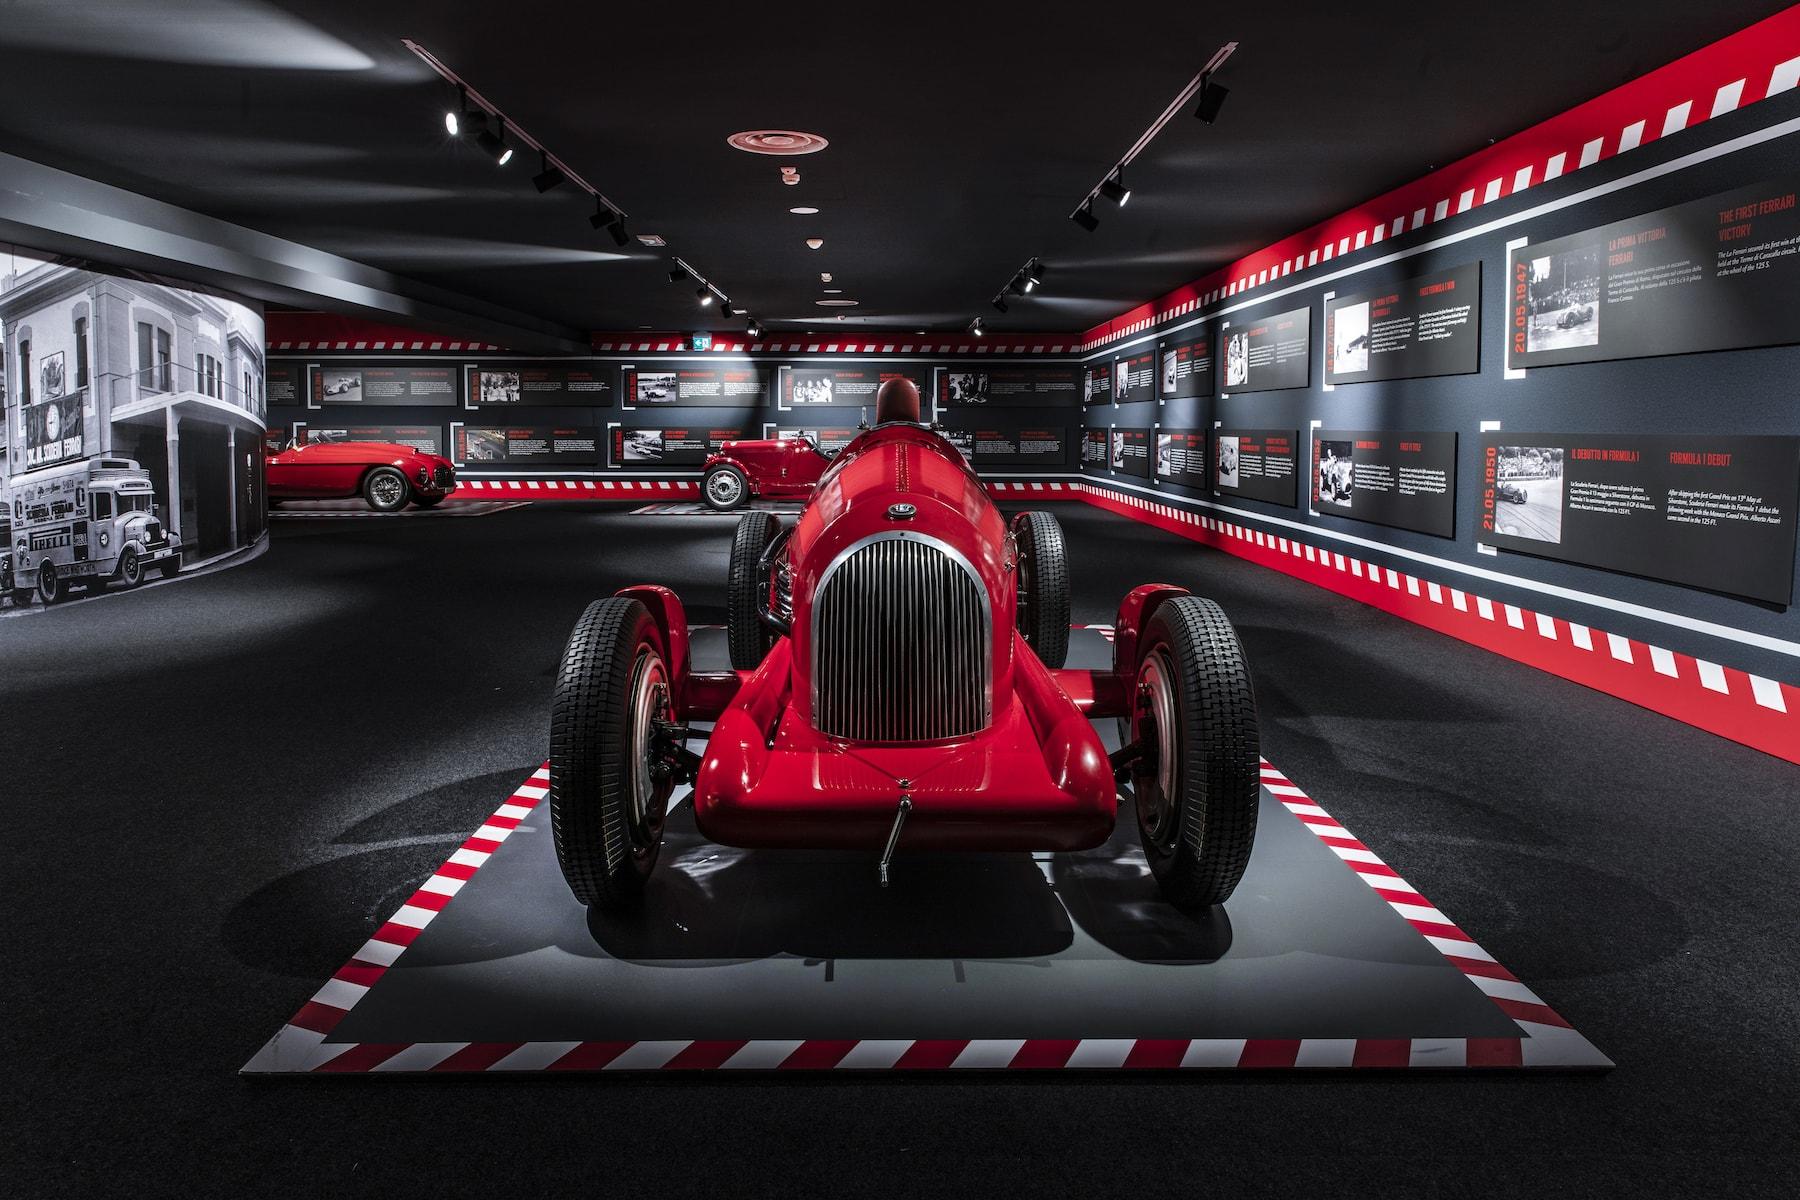 2019 Museo Ferrari 90 years exhibition 8.jpg